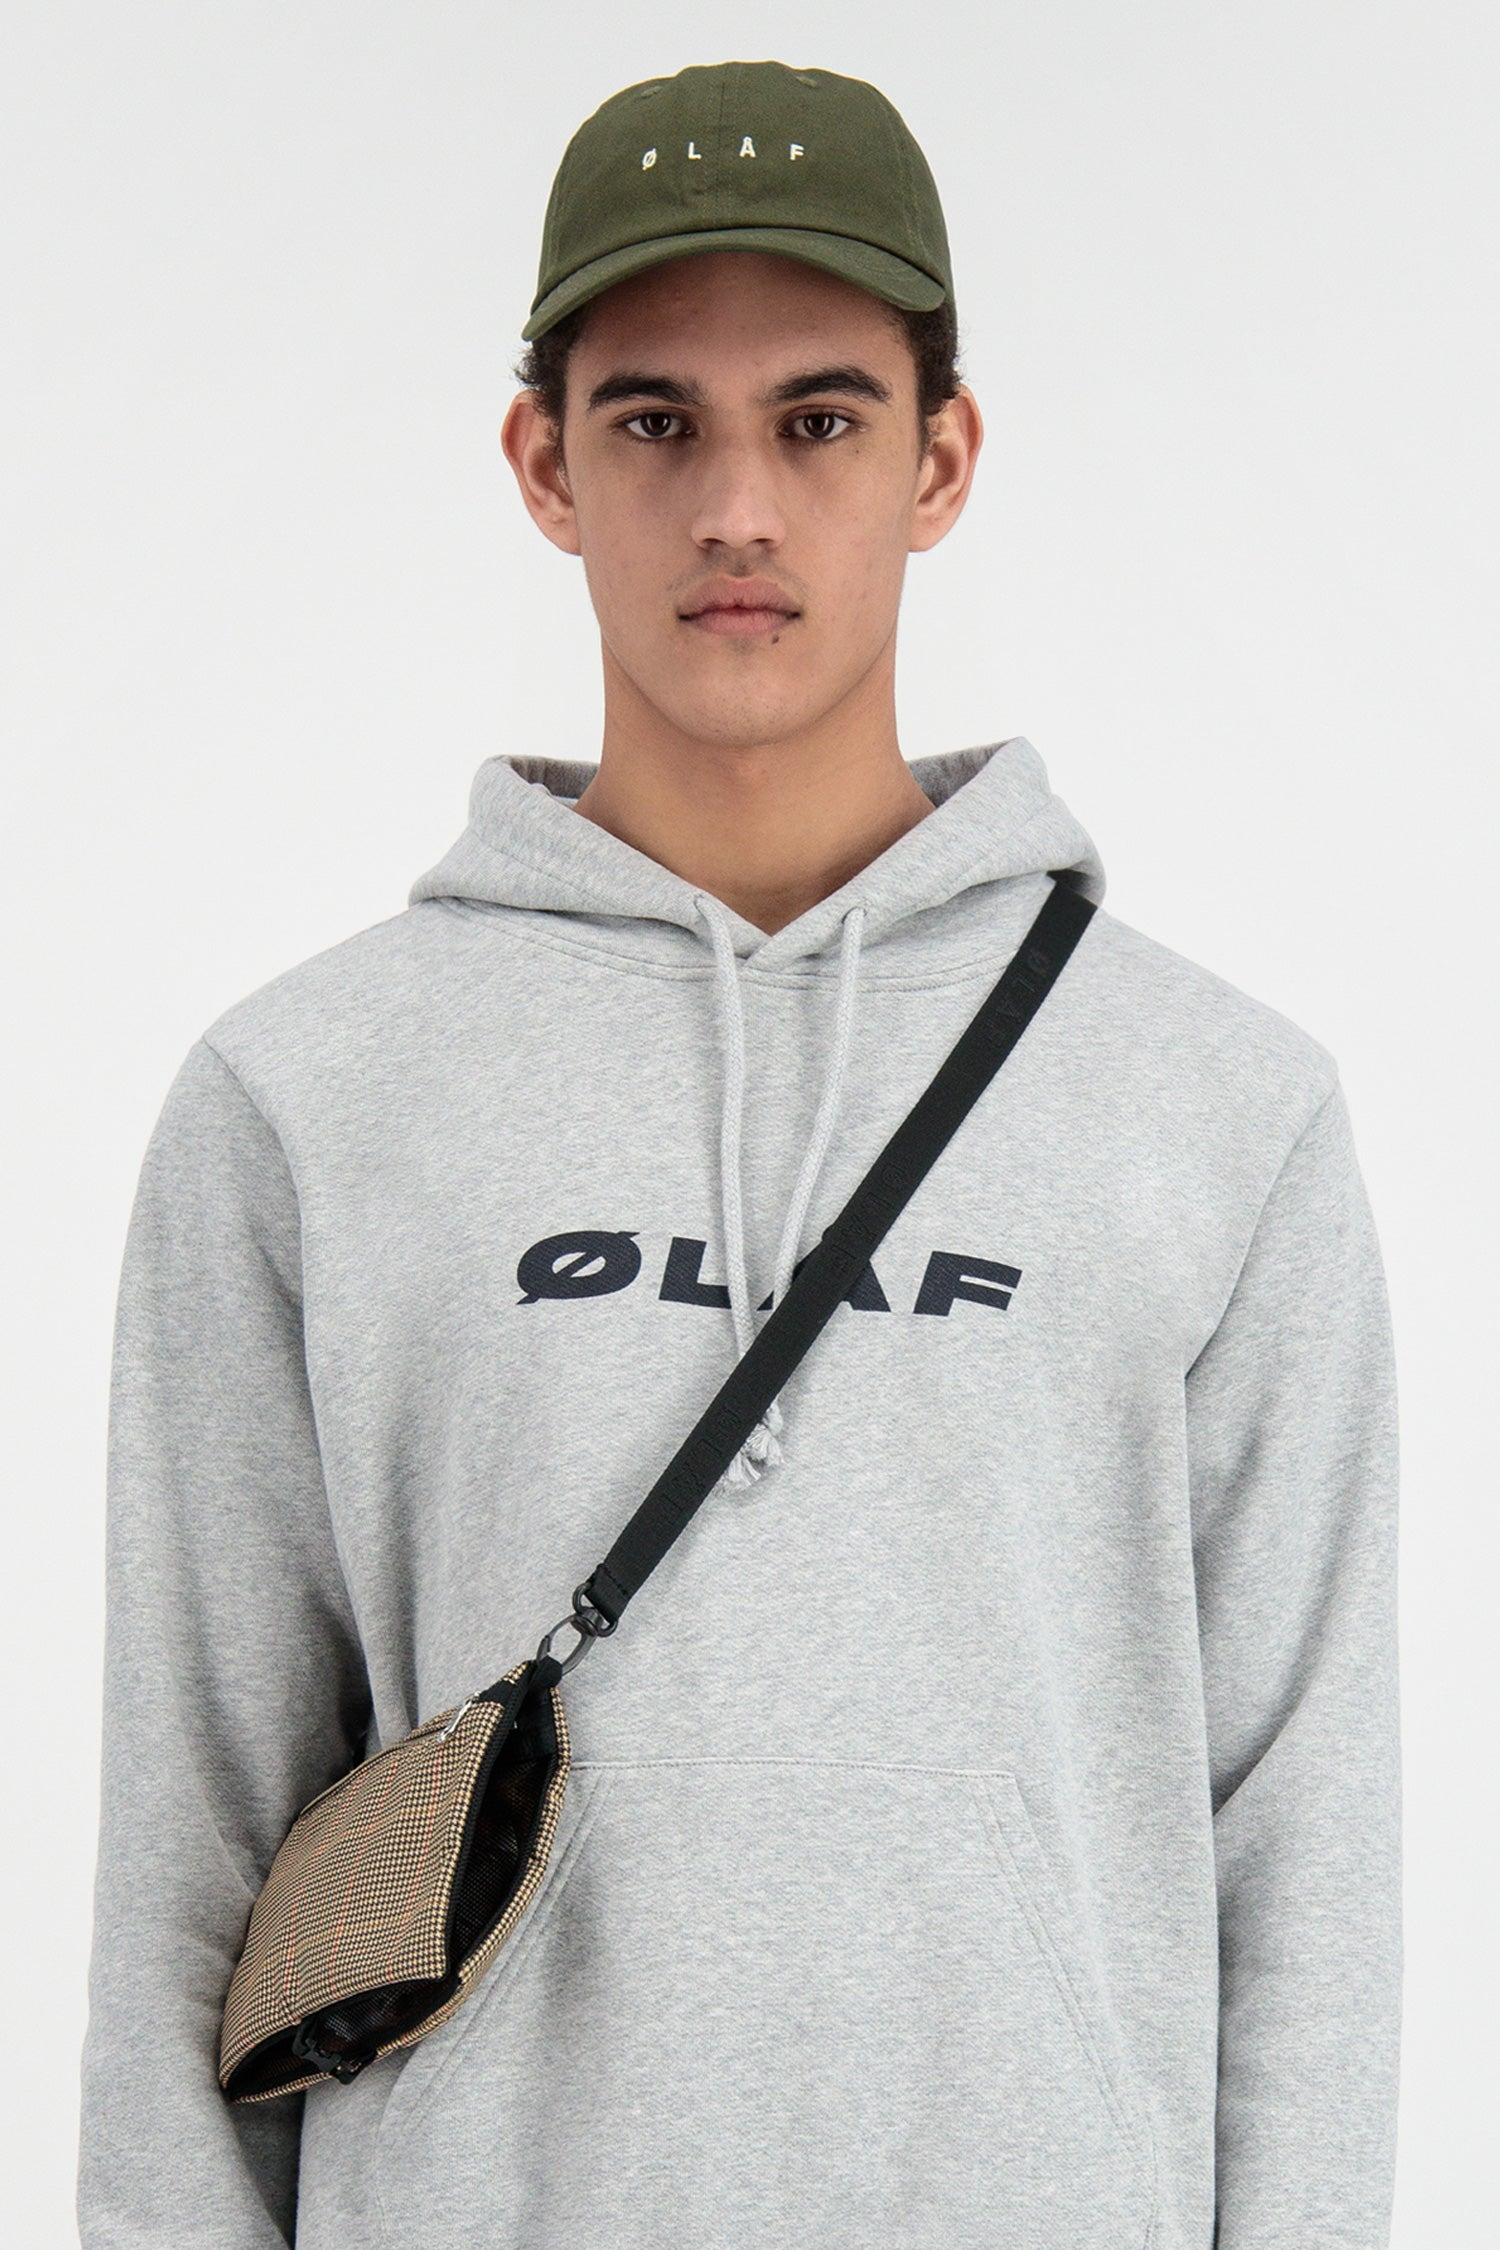 ØLÅF Passport Bag <br>Check